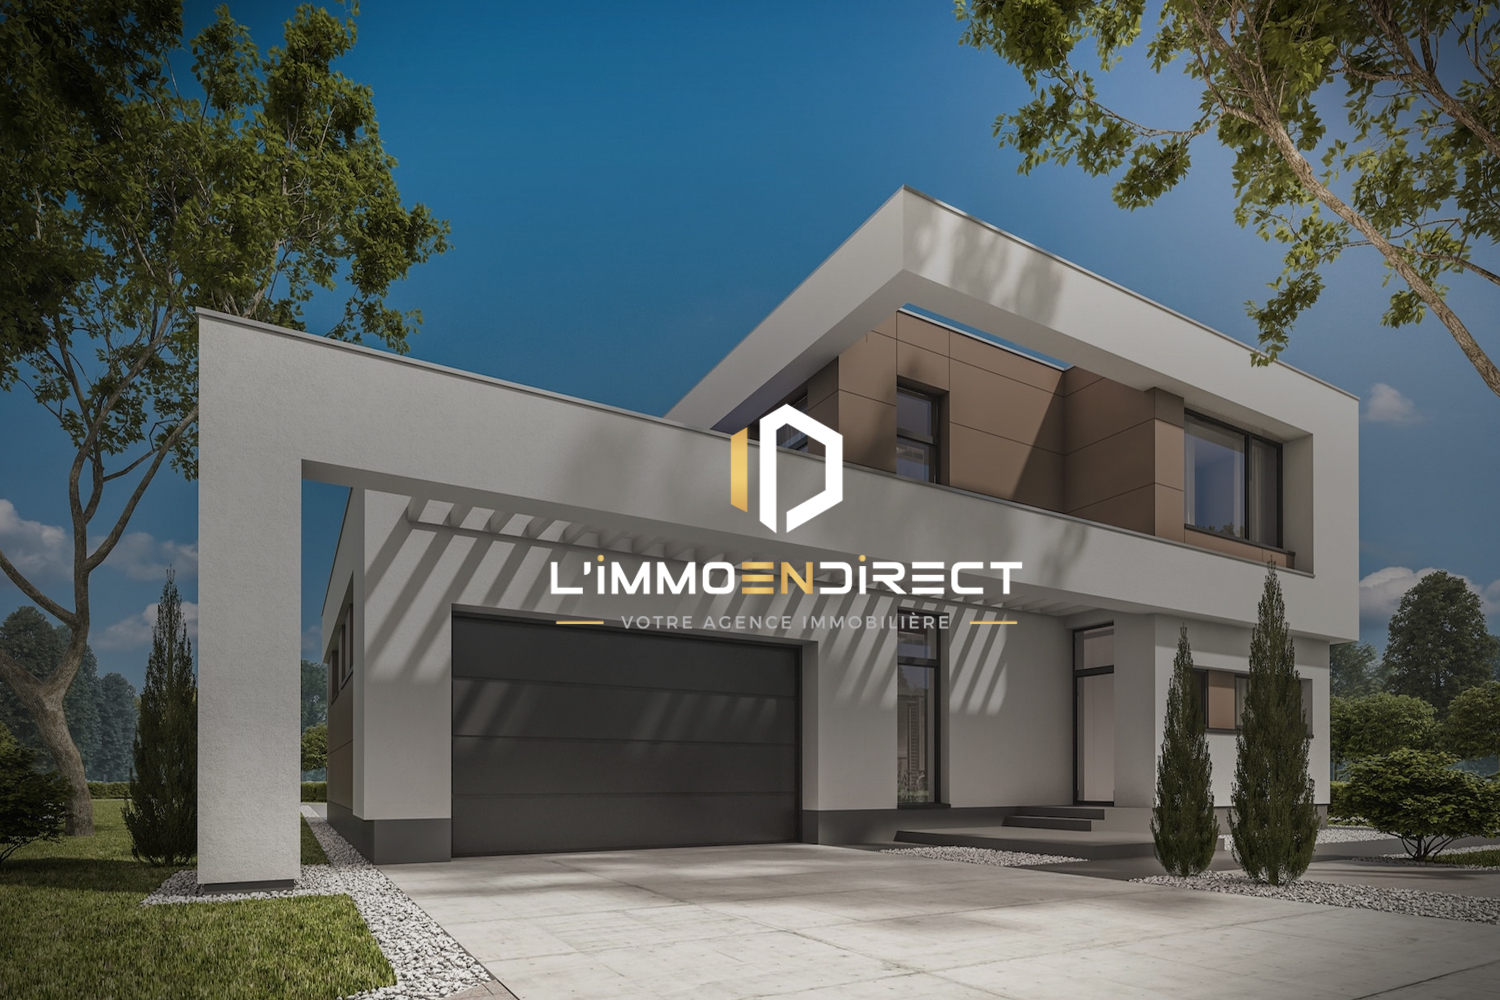 Agence immobiliere l immo en direct